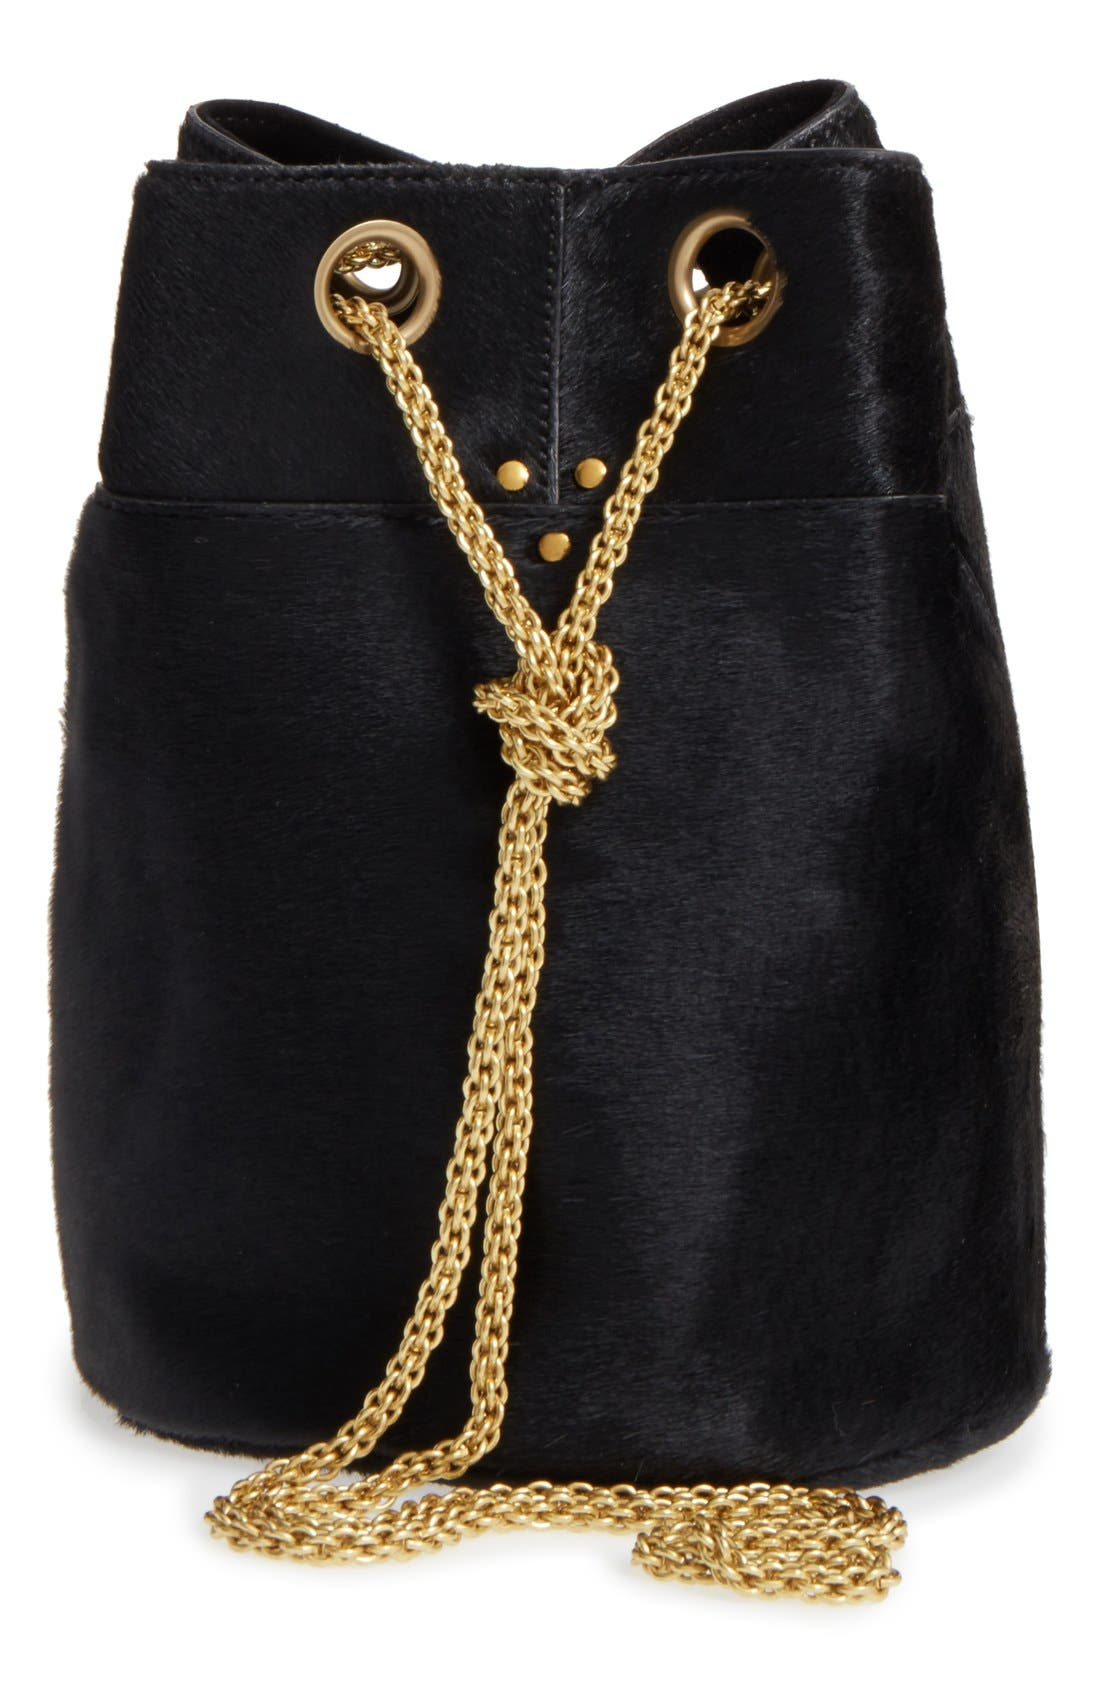 Alternate Image 1 Selected - Jerome Dreyfuss 'Small Popeye' Genuine Calf Hair Bucket Bag